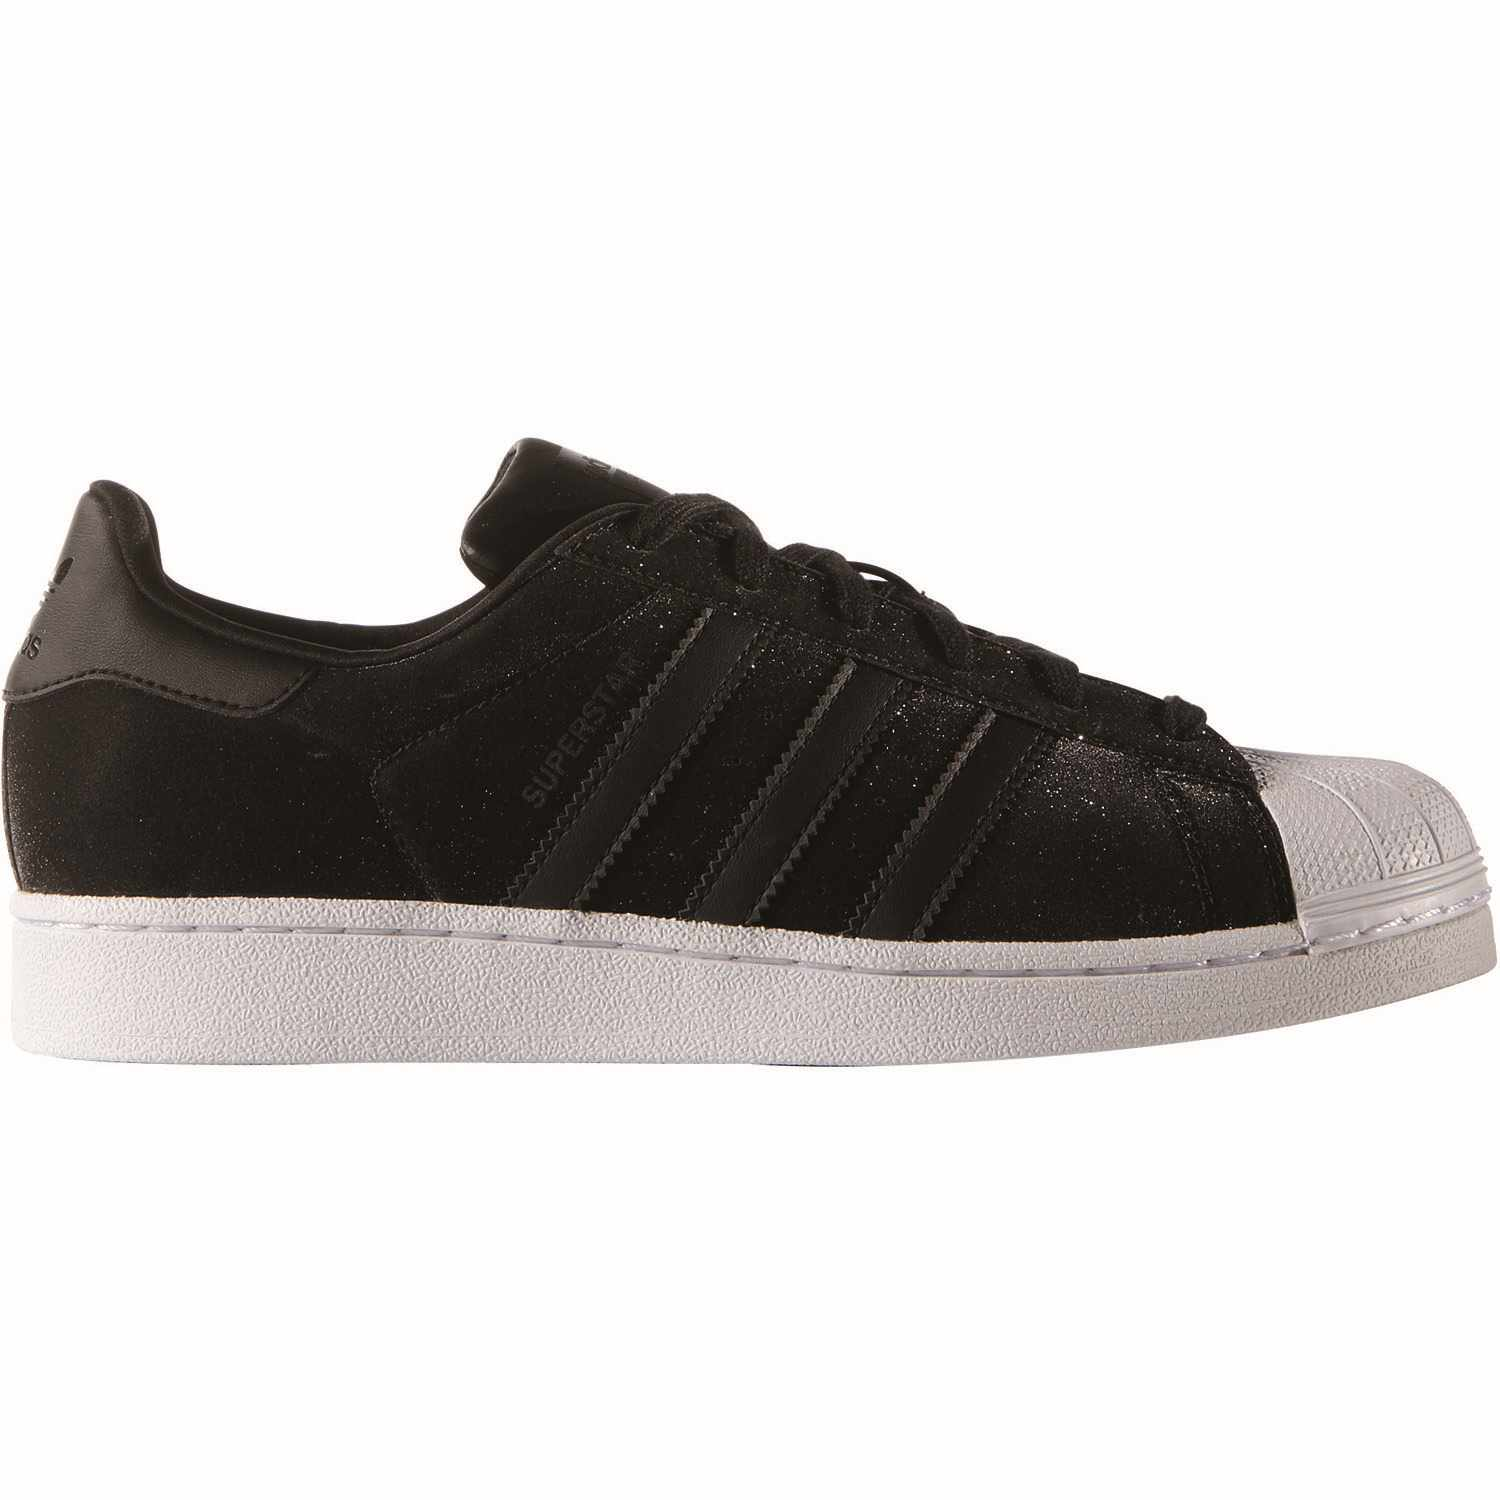 adidas originals superstar women sneaker schuh s75124. Black Bedroom Furniture Sets. Home Design Ideas